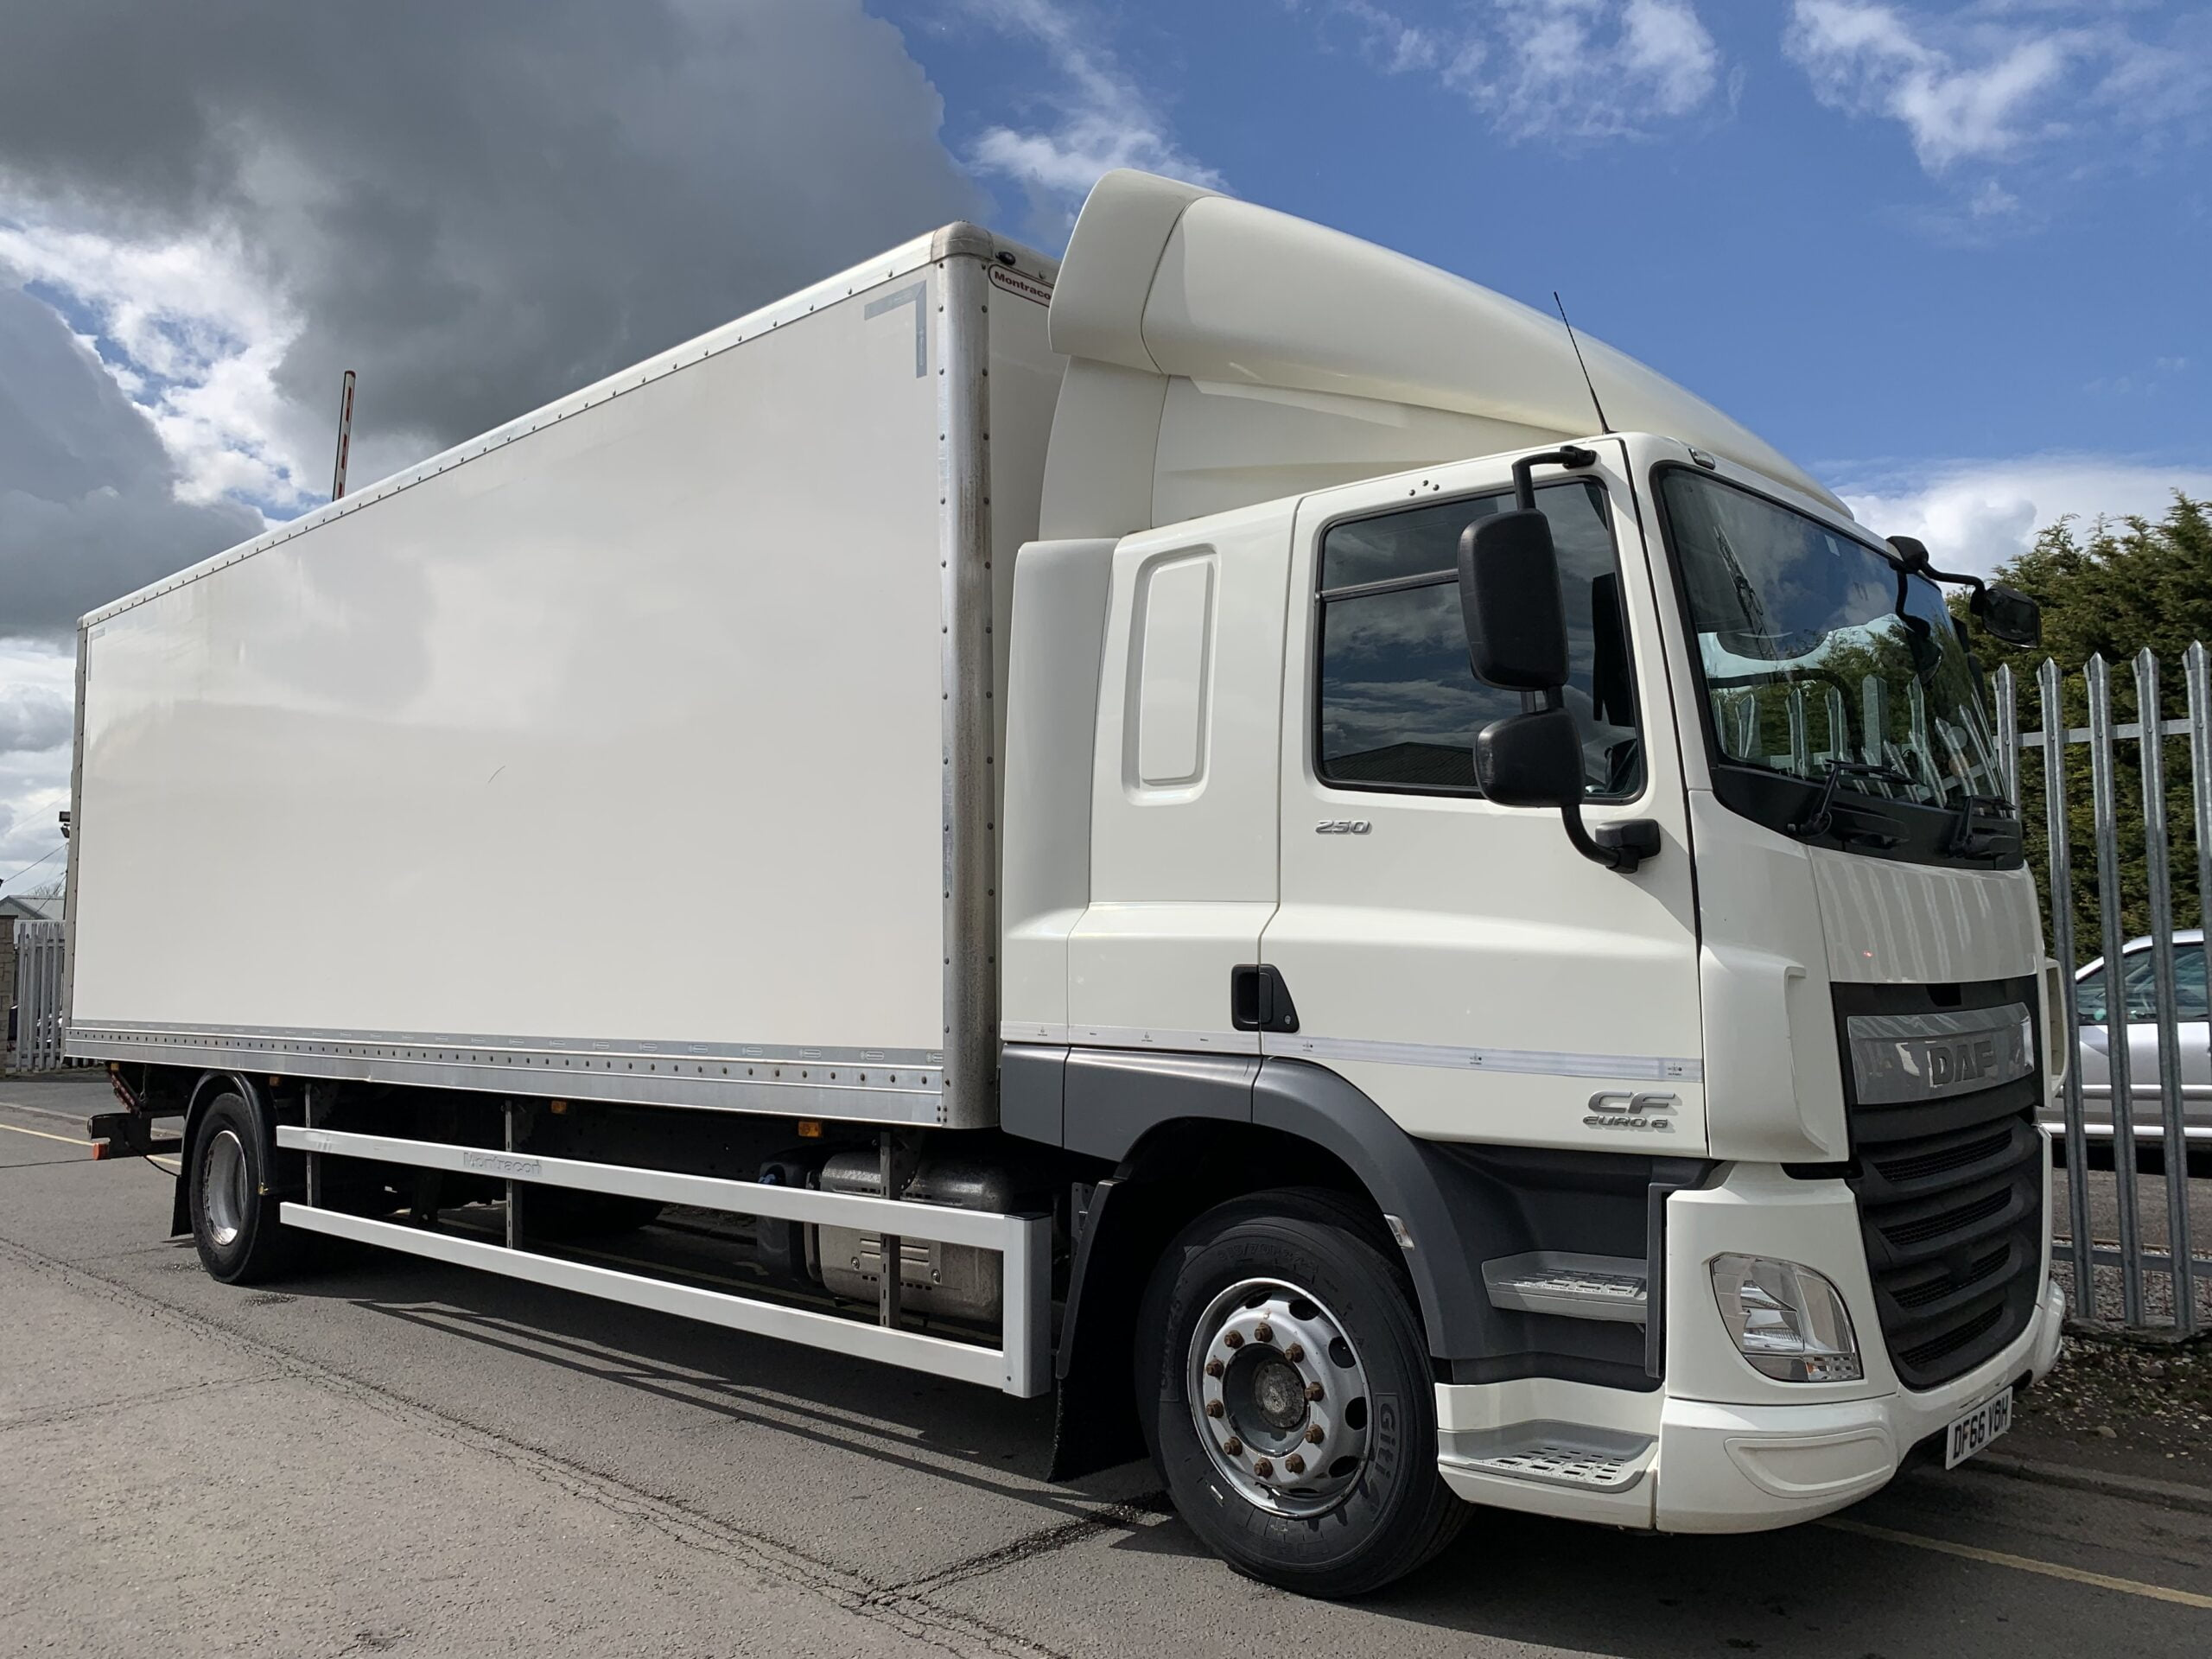 2016 (66) DAF CF Box Tailift, 18 Tonne, 250bhp, Euro 6, Dhollandia Tuckunder Tailift (1500kg Capacity), Automatic Gearbox, Montracon 27ft Body, Sleeper Cab, Steering Wheel Controls, Flush Rear Doors, Load Lock Rail, Warranty & Finance Options available.